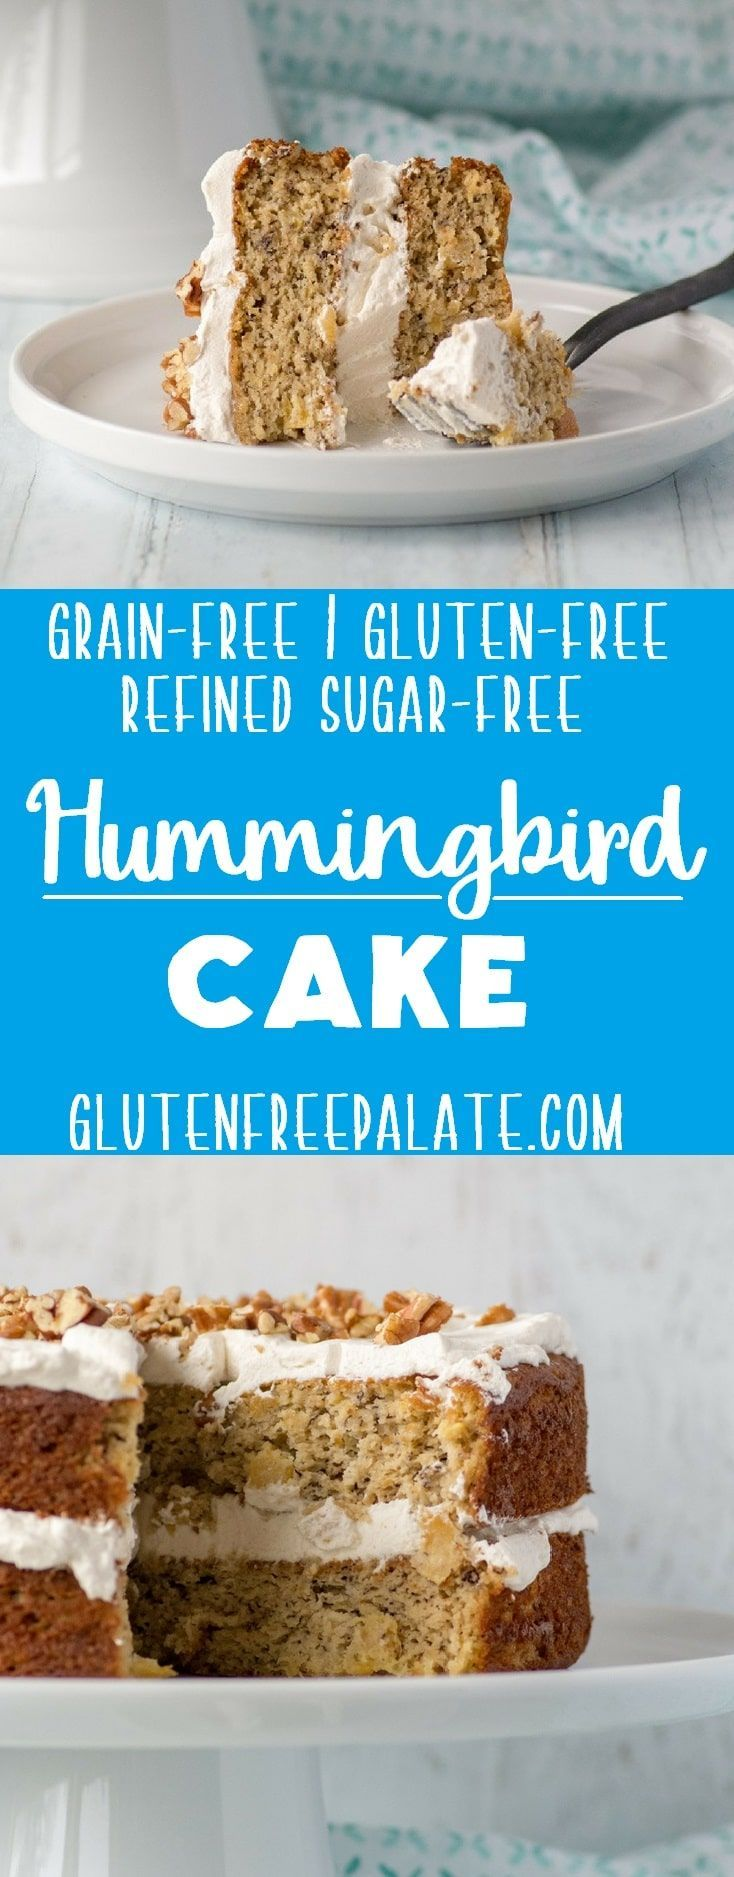 316 best Cakes images on Pinterest | Cakes, Candy and Clean eating ...